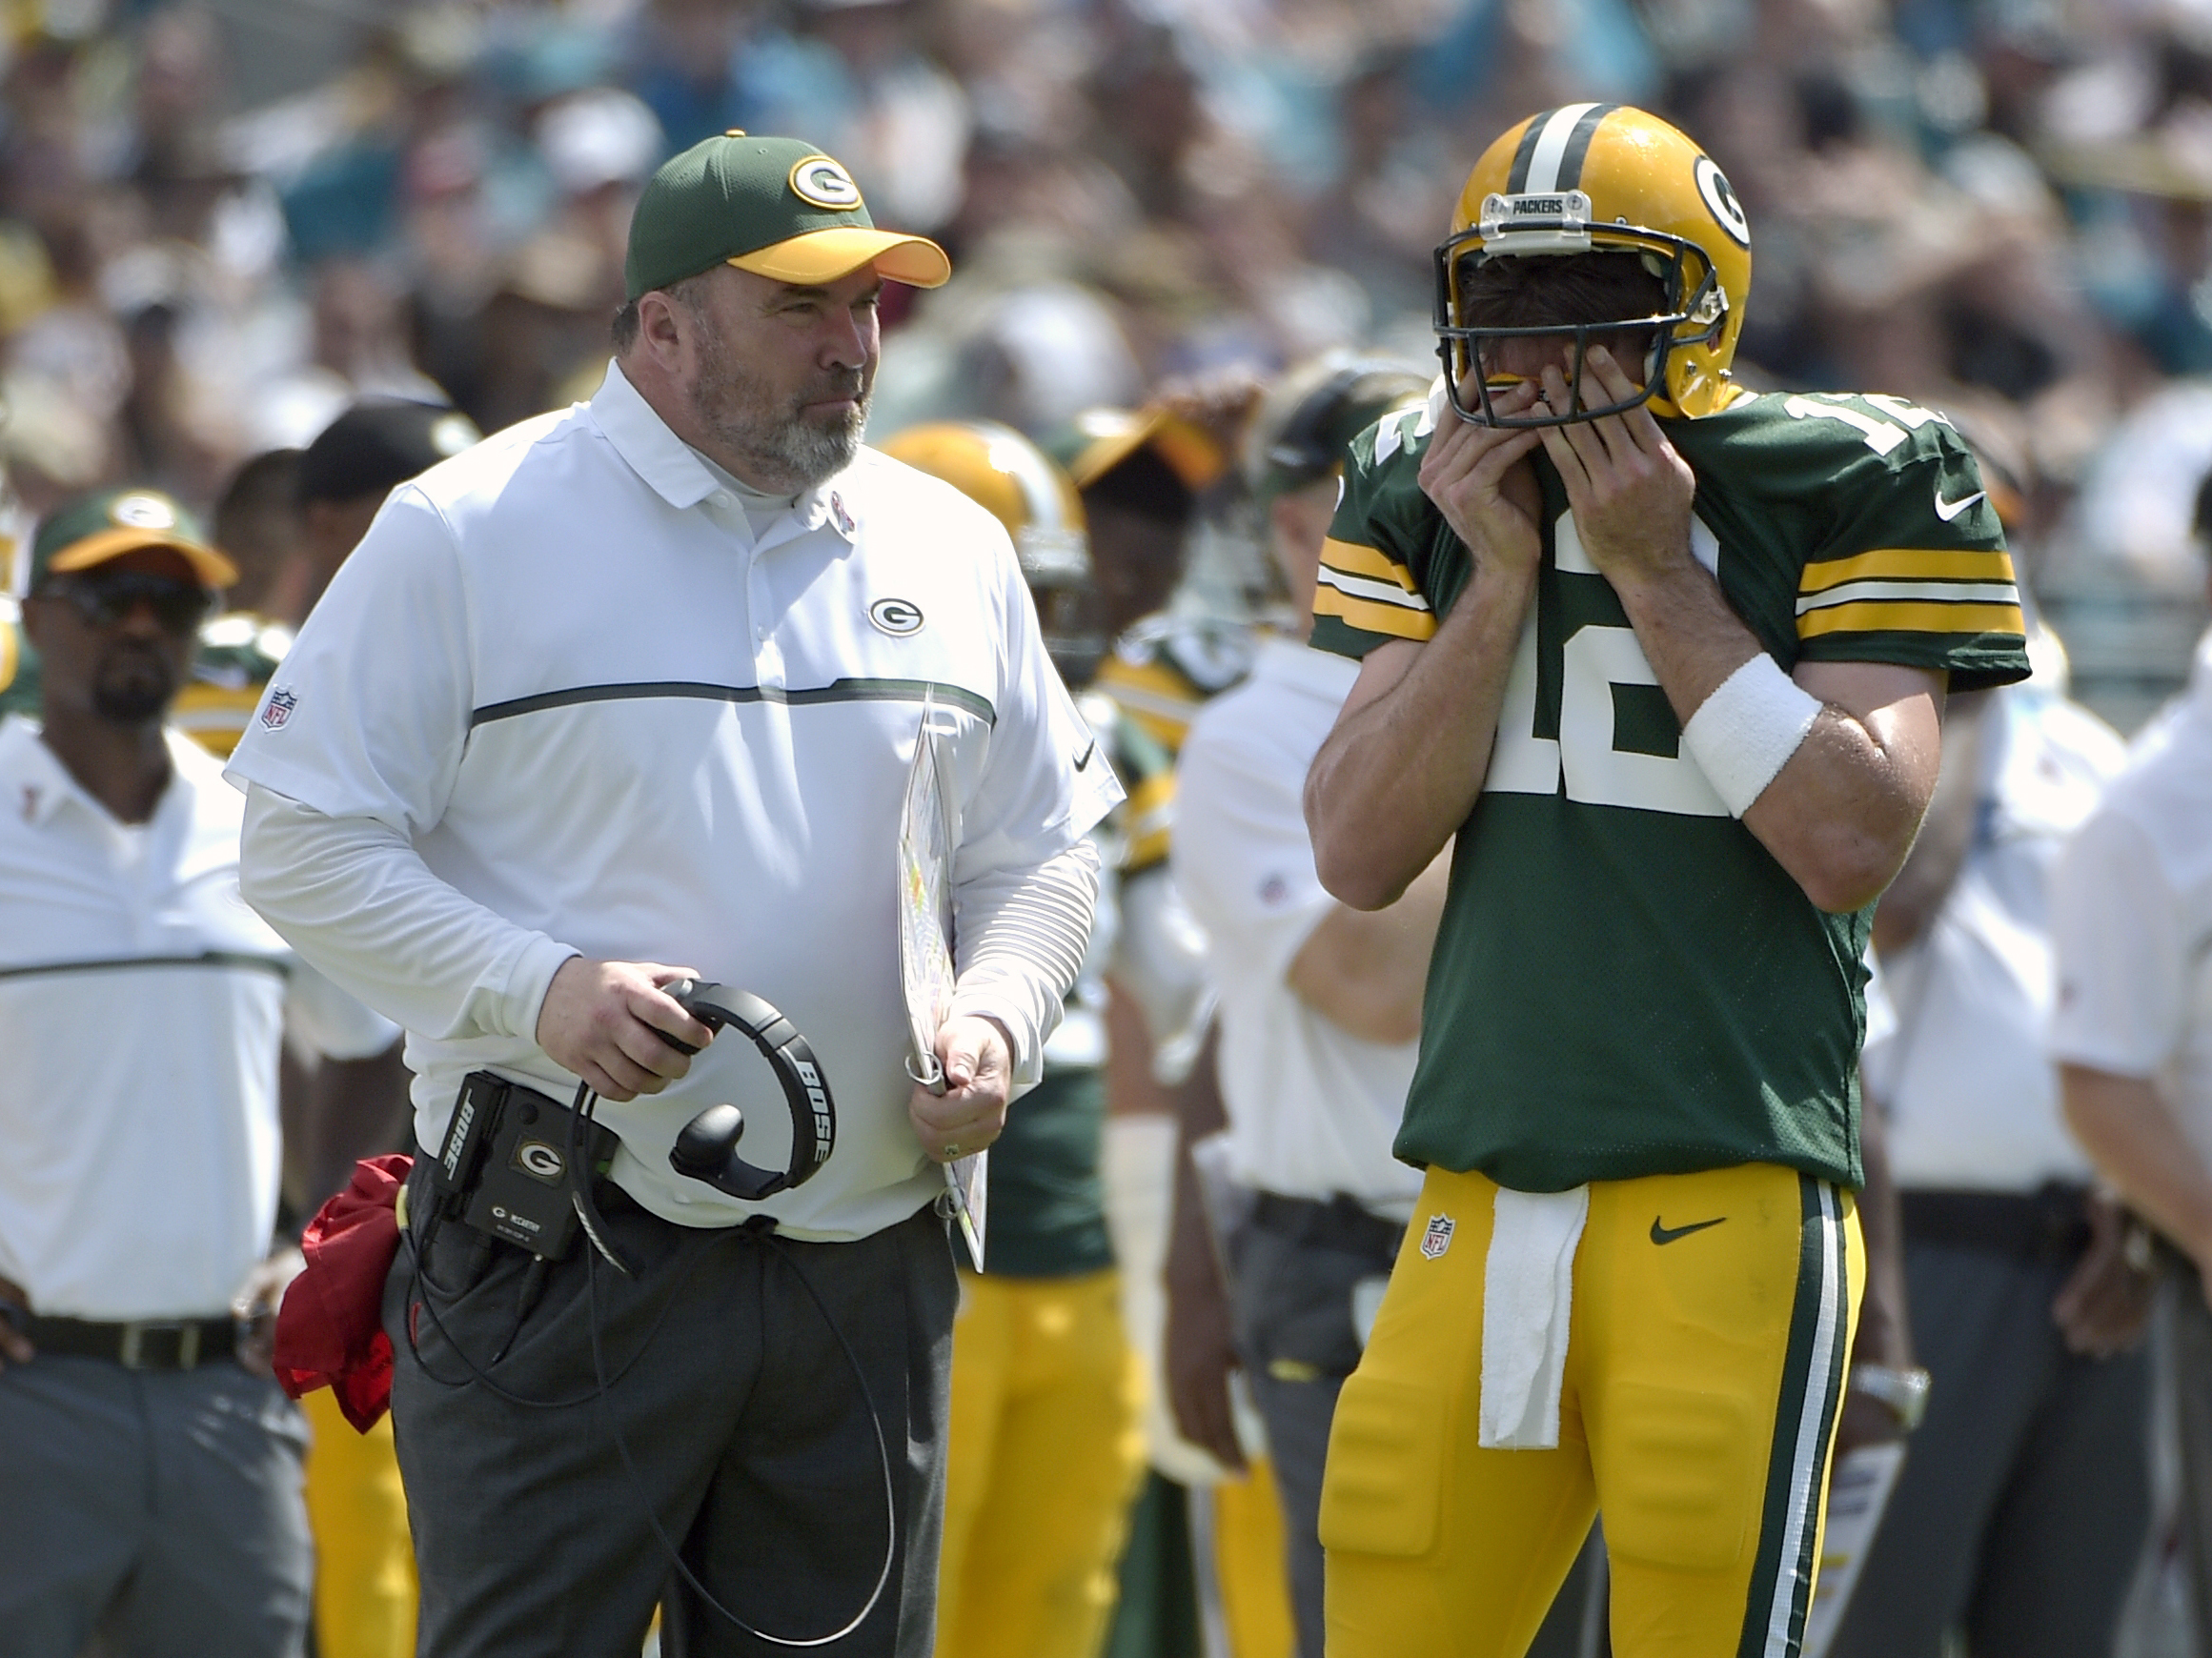 FILE - In this Sept. 11, 2016, file photo, Green Bay Packers head coach Mike McCarthy and quarterback Aaron Rodgers (12) chat on the sideline during the second half of an NFL football game against the Jacksonville Jaguars in Jacksonville, Fla. McCarthy is